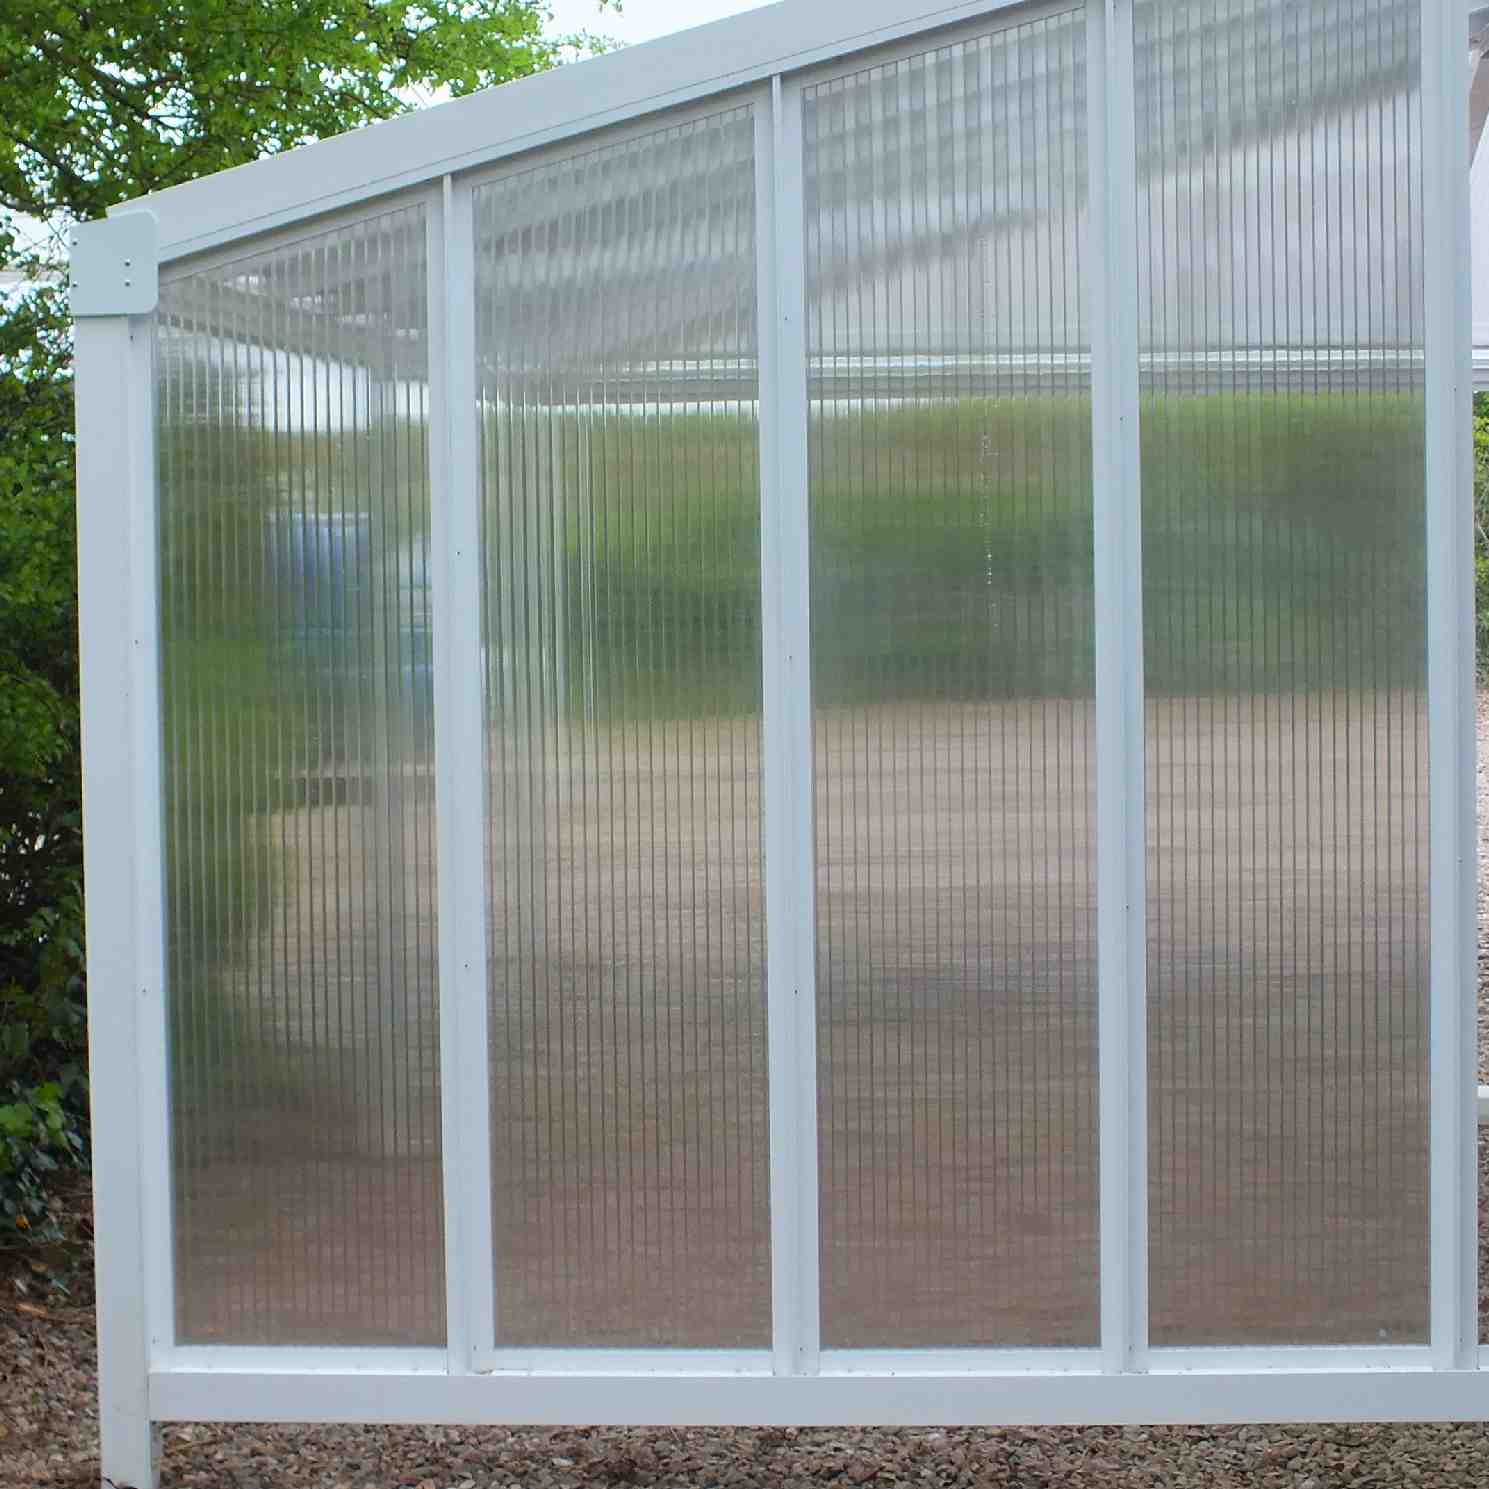 Omega Smart Canopy - FULL Side In-Fill Section for Sides of Canopy, 16mm Polycarbonate In-Fill Panels, White Frame